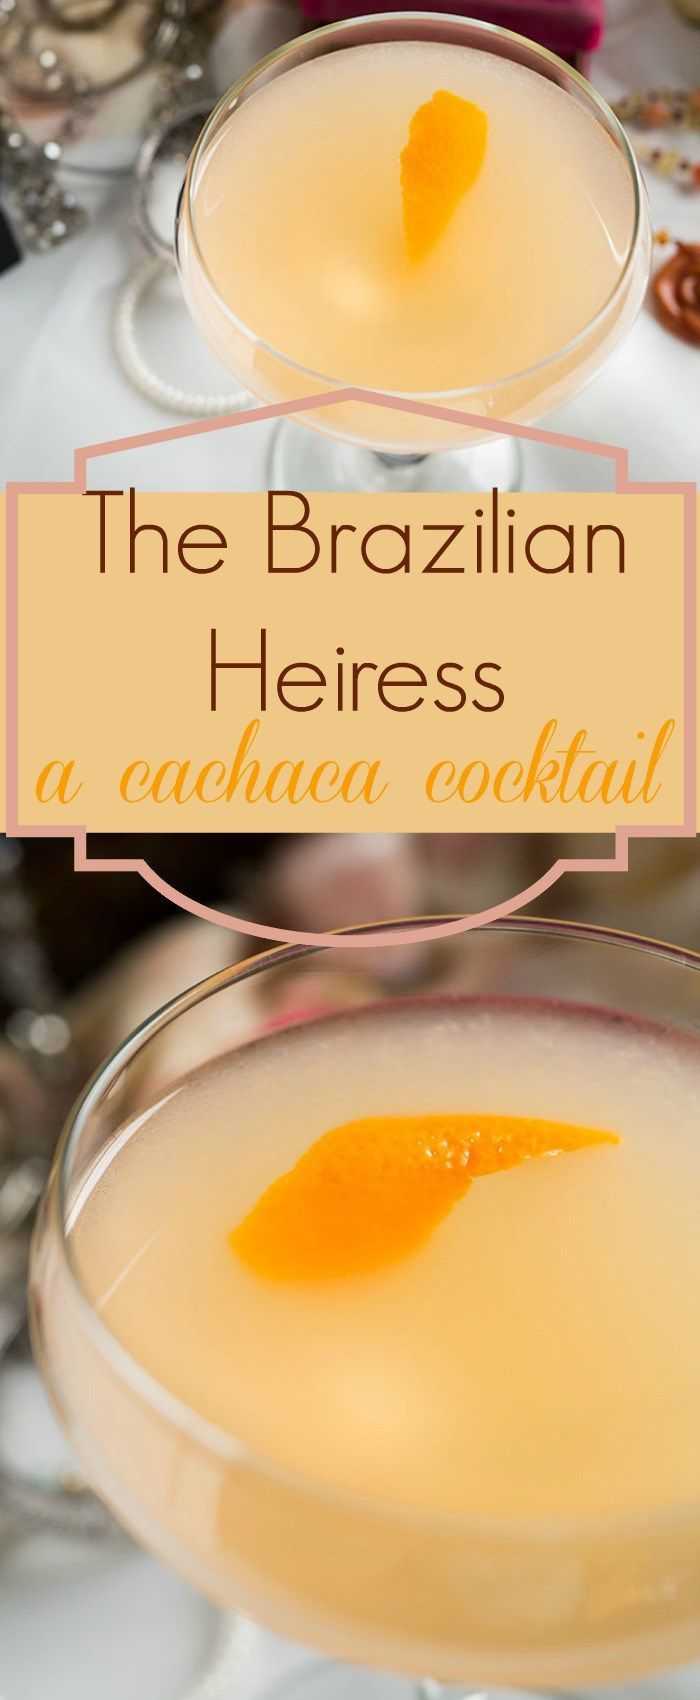 Cachaça, Brazil's signature spirit, is about to take the cocktail world by storm. Get on trend with this lively, pale pink cachaça cocktail.